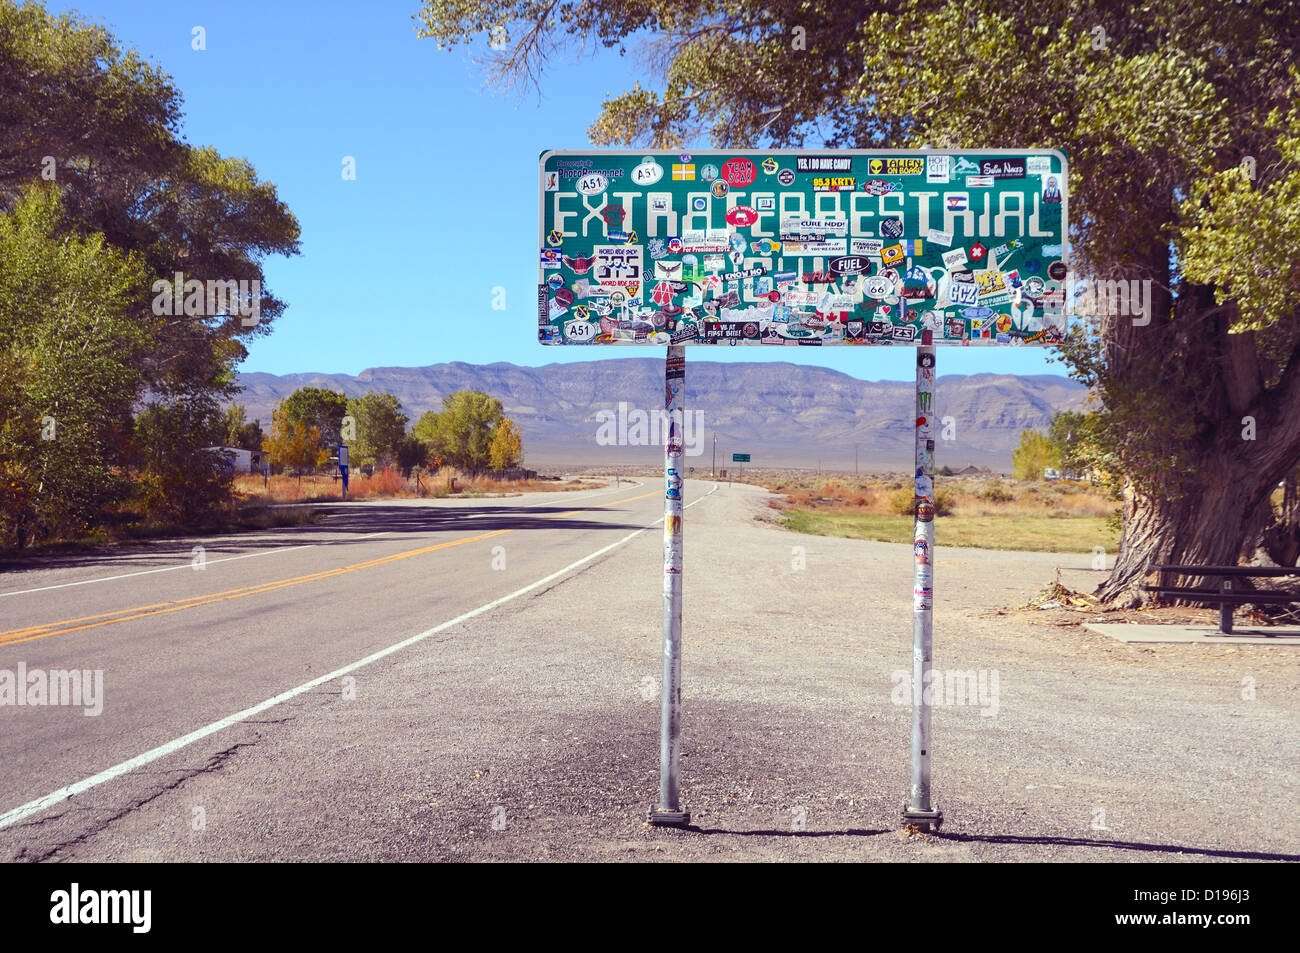 The 'Extraterrestrial Highway' Nevada State Route 375 leads to 'Area 51' - and beyond! - Stock Image